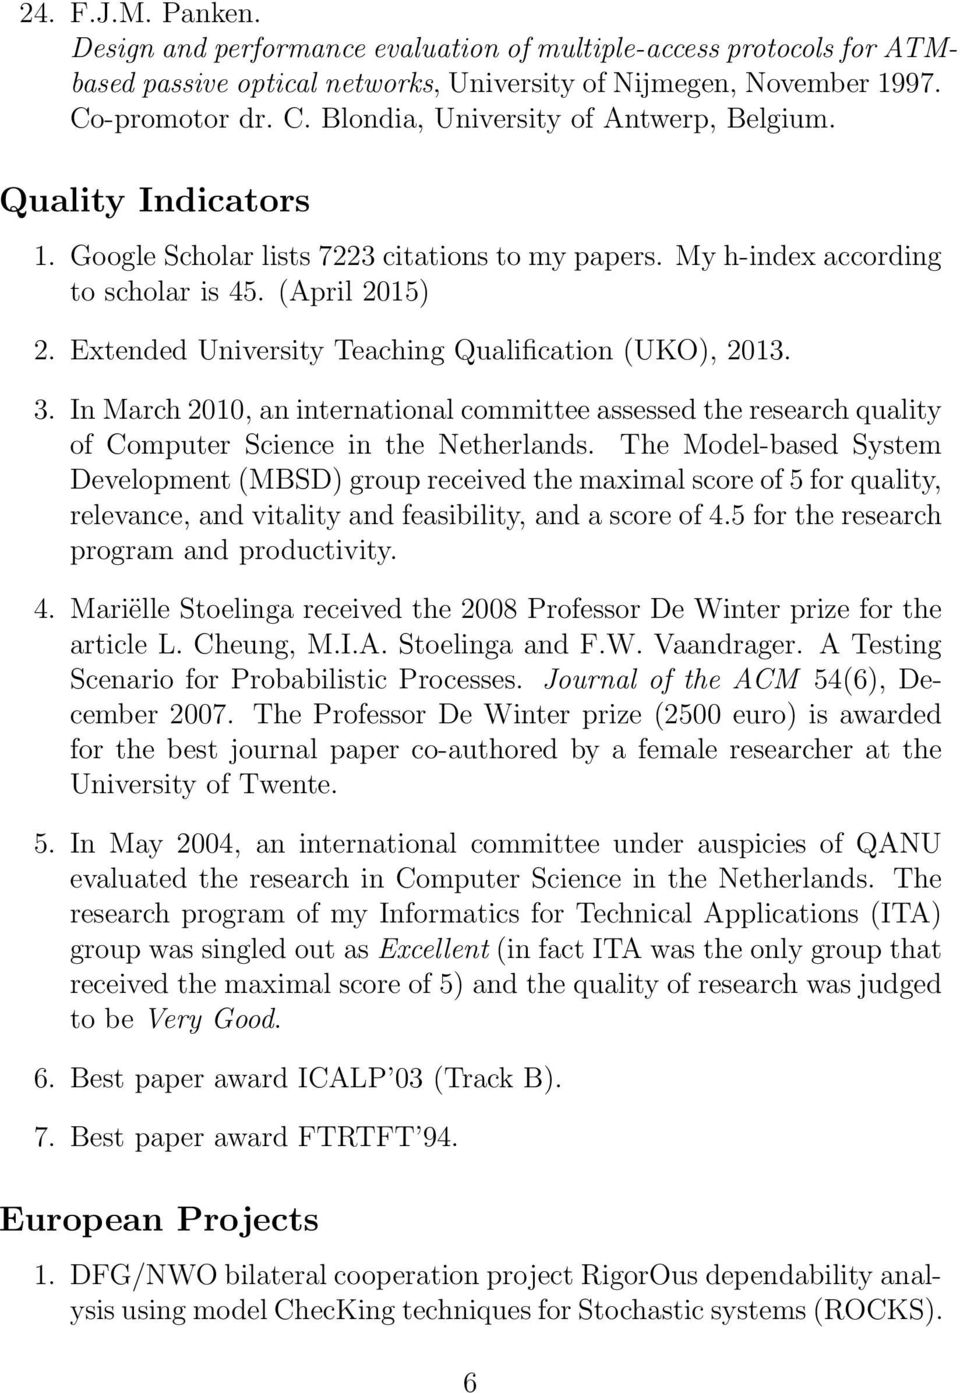 Extended University Teaching Qualification (UKO), 2013. 3. In March 2010, an international committee assessed the research quality of Computer Science in the Netherlands.